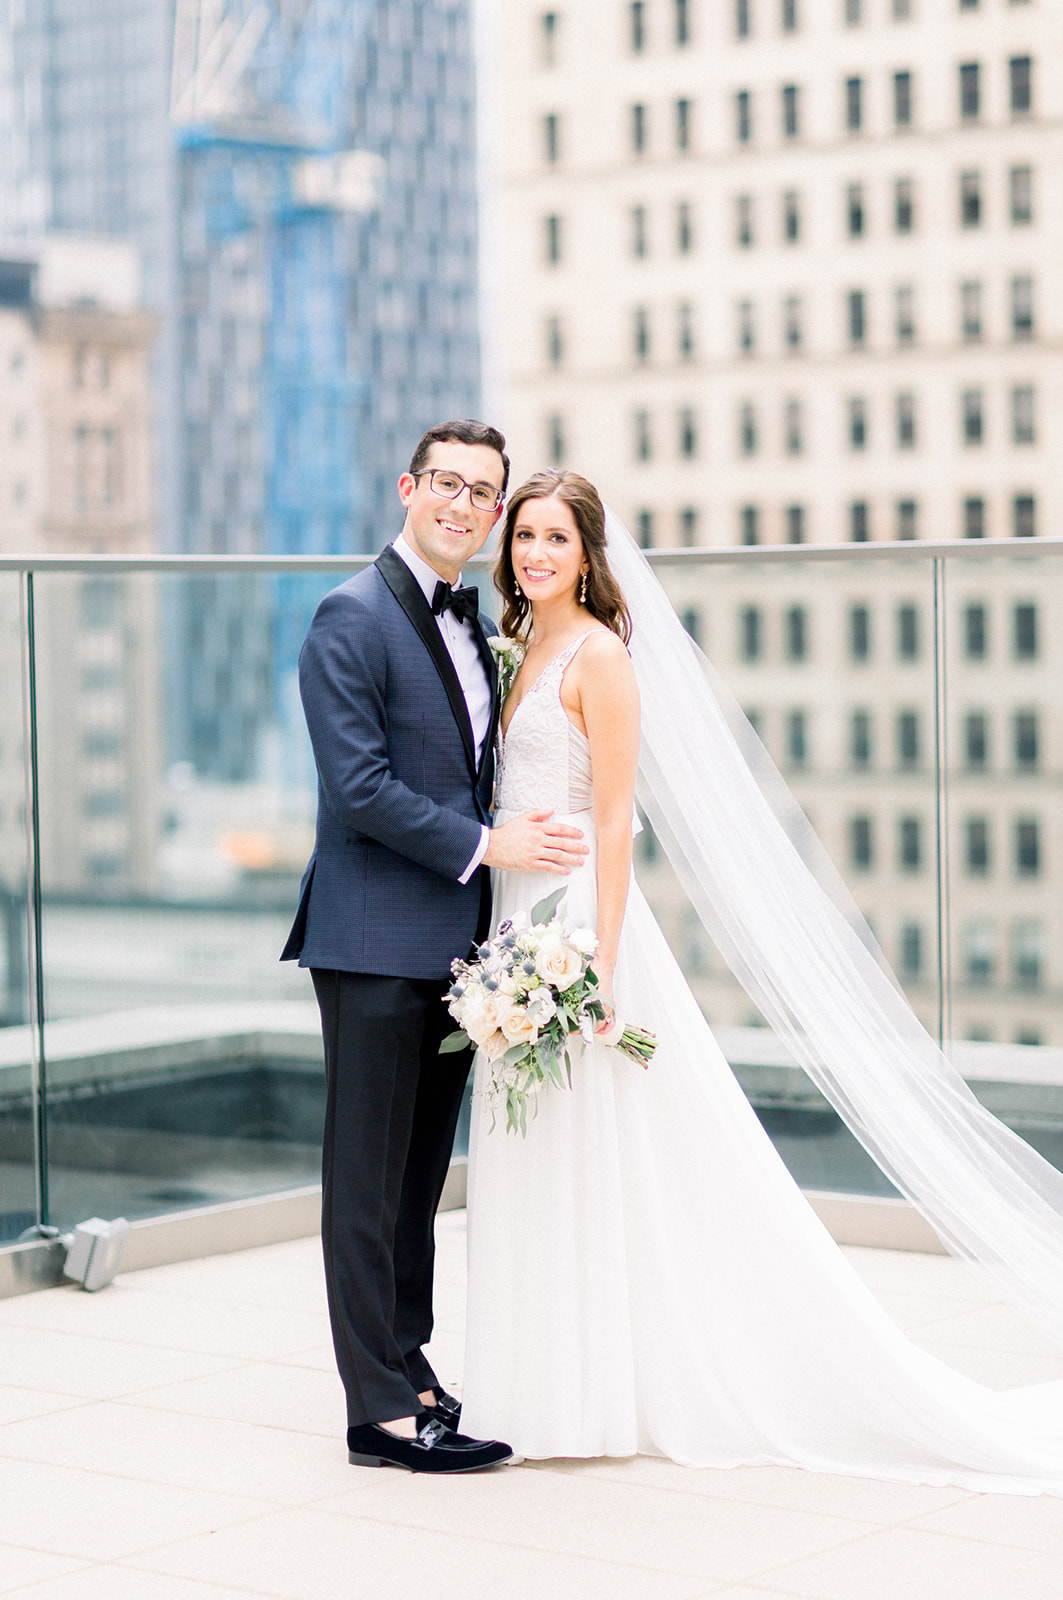 Bride and groom take wedding photos for Pittsburgh wedding held at Hotel Monaco. See more beautiful details of this simple, yet stunning wedding at exhale-events.com!